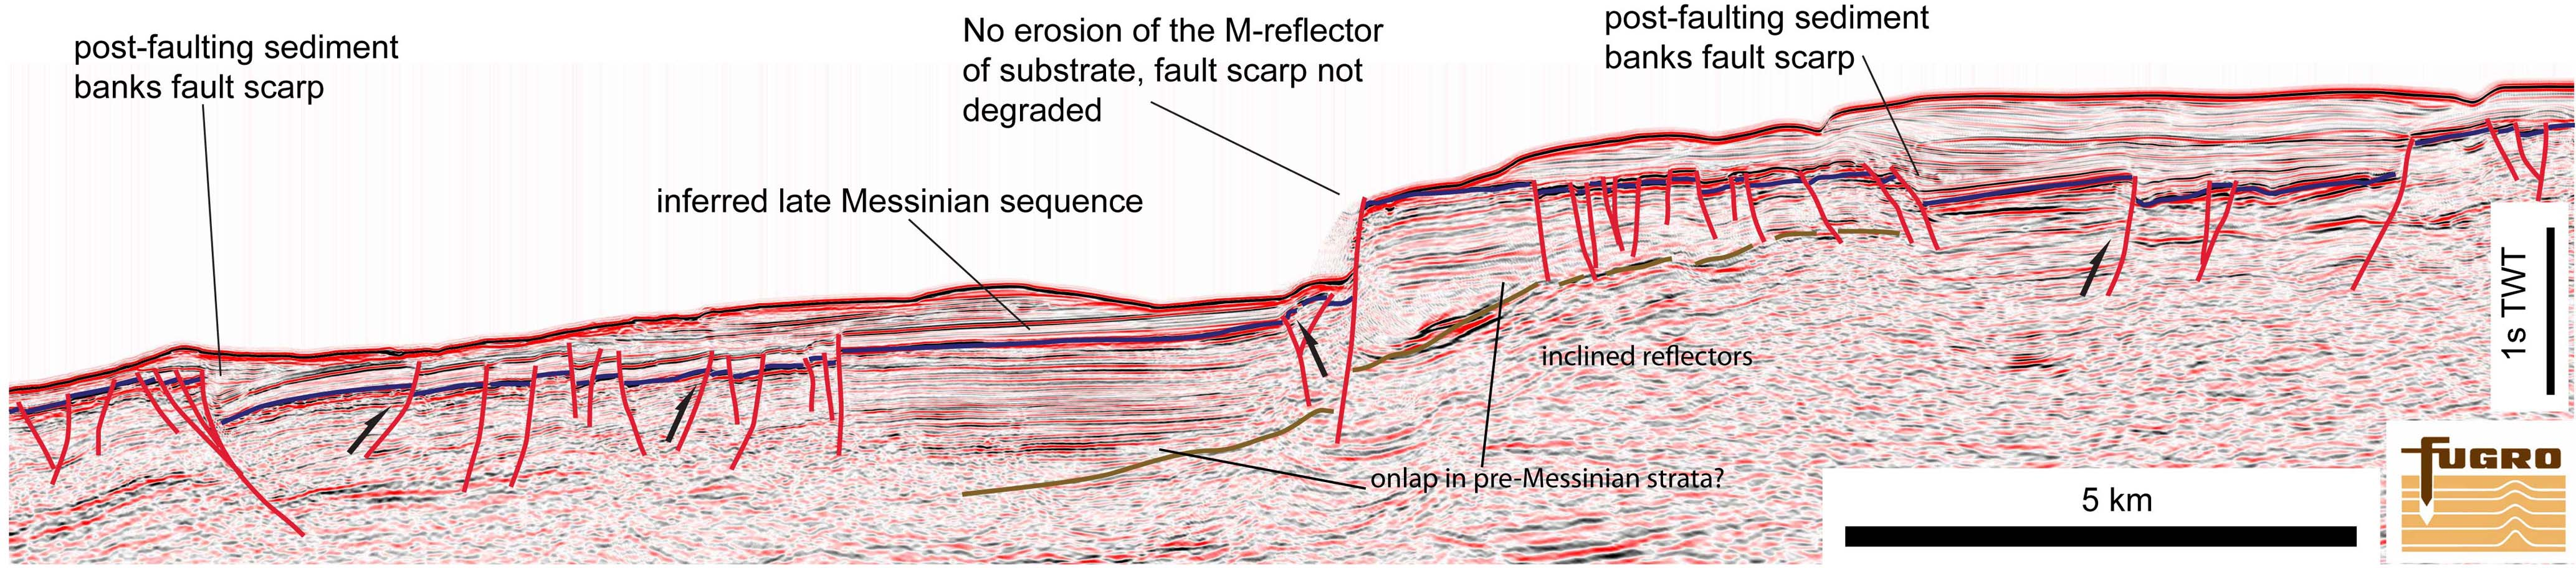 Calabrian trench with annotation (credit: Rob Butler, seismicatlas.org)